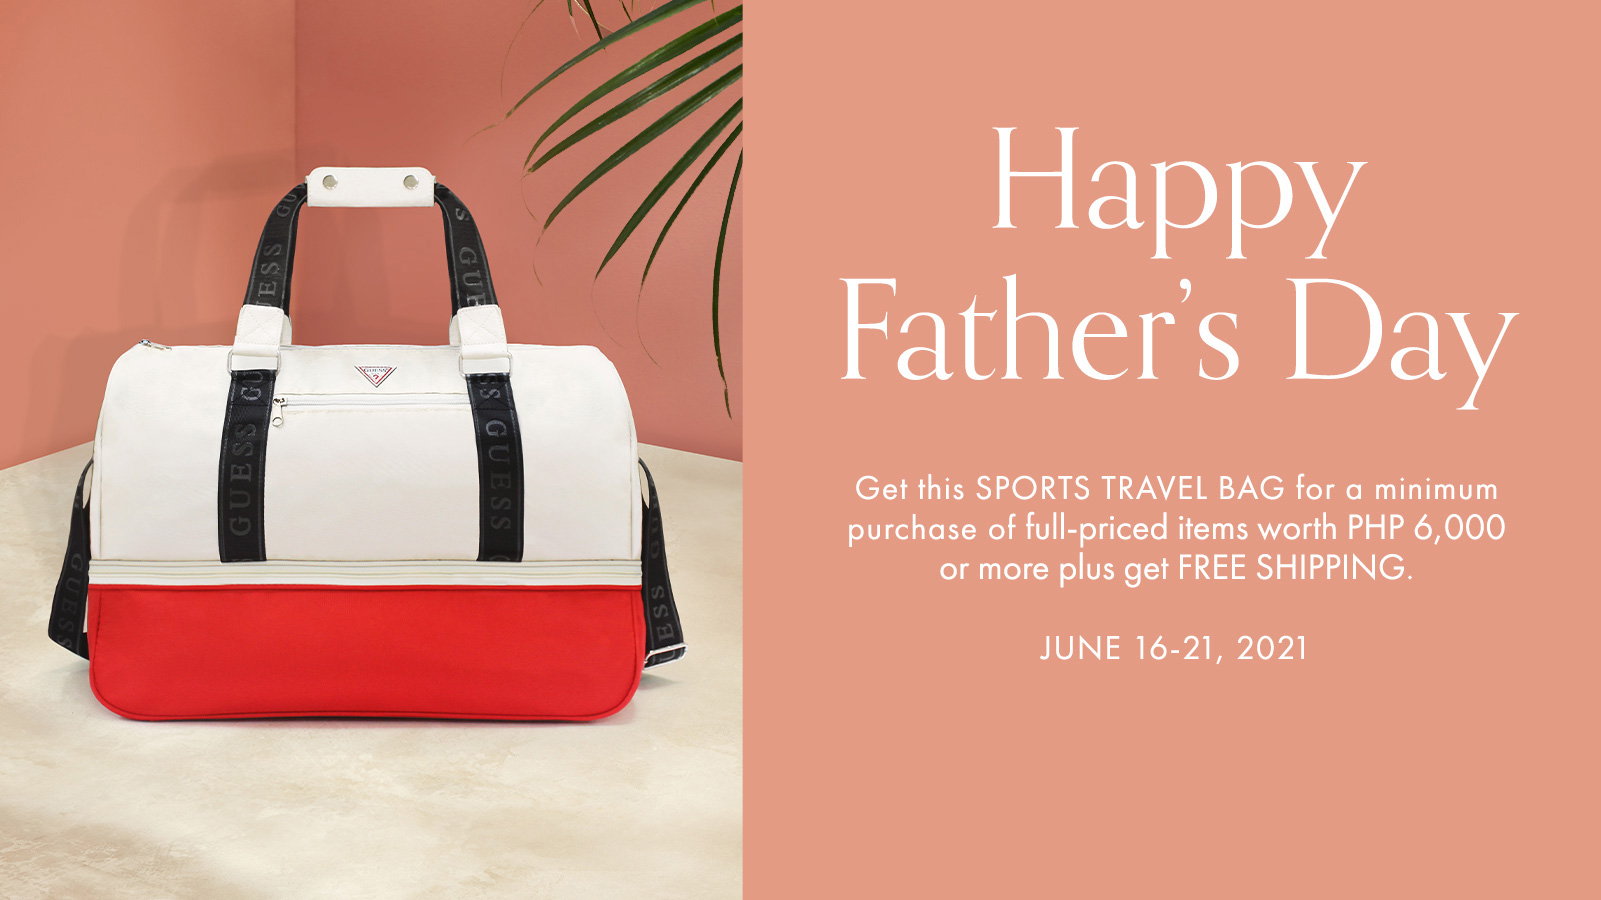 web-pop-up---fathers-day-event2desk.jpg